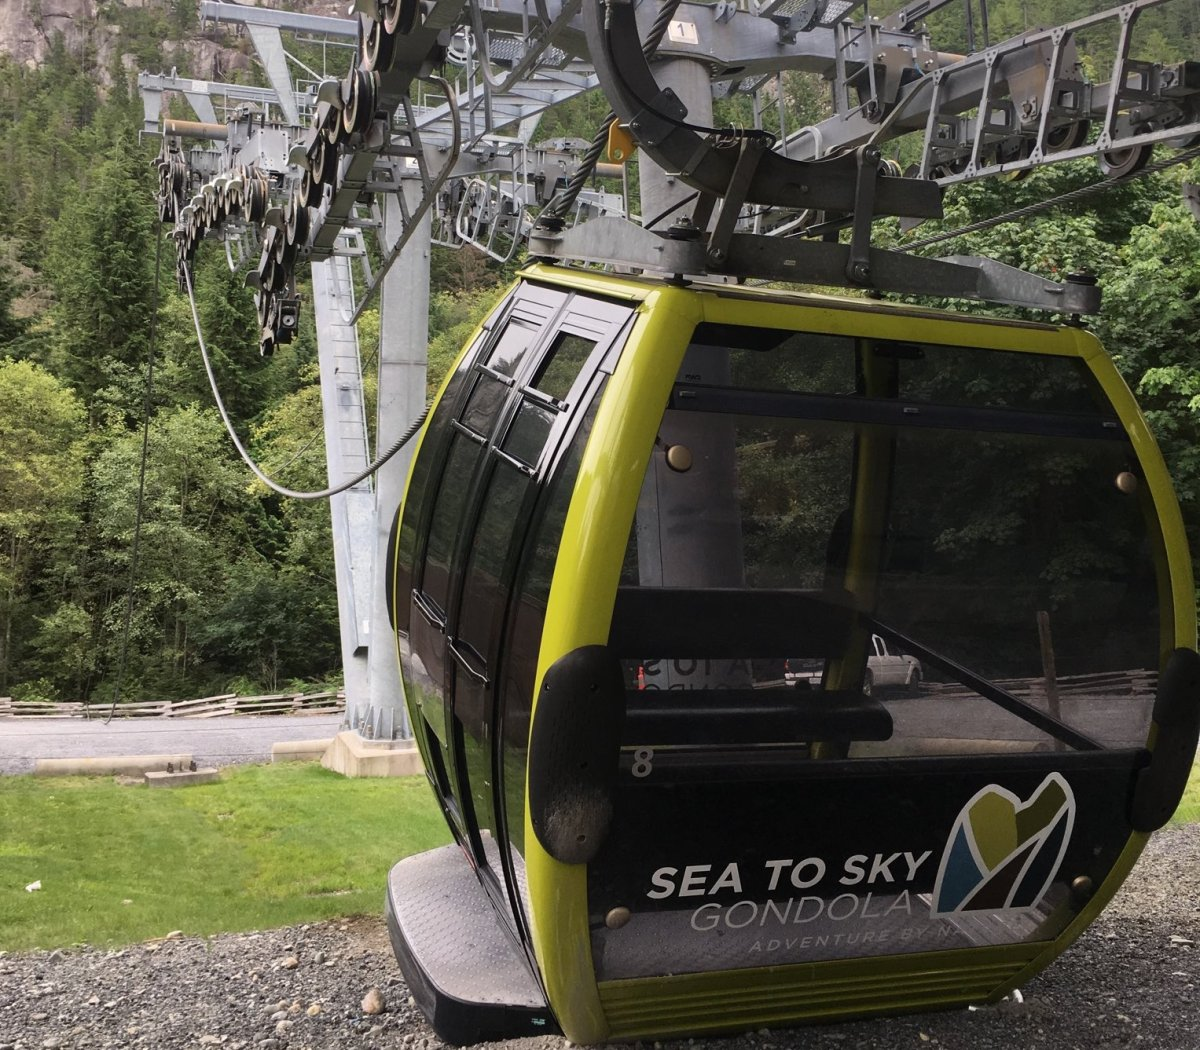 The Sea to Sky Gondola after its cable was deliberately cut on Aug. 10, 2019.